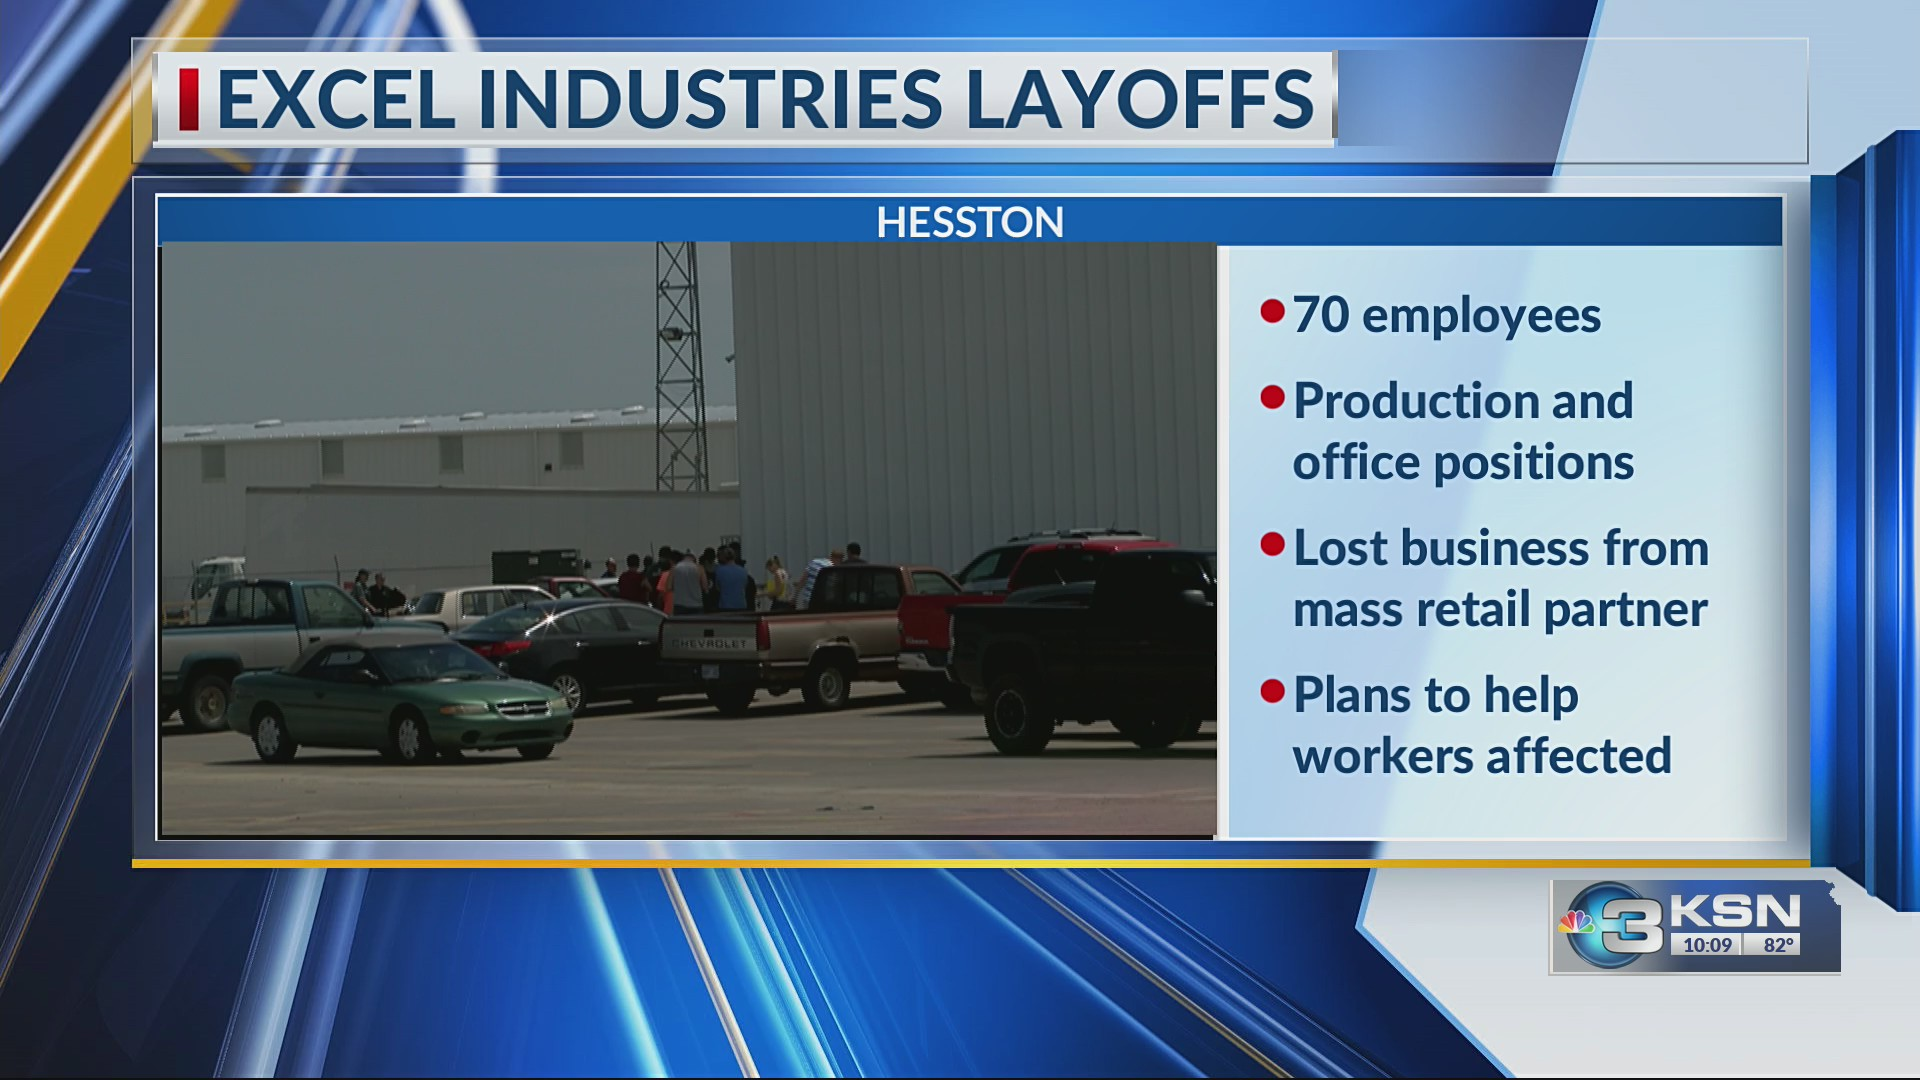 Excel Industries in Hesston lays off nearly 70 employees